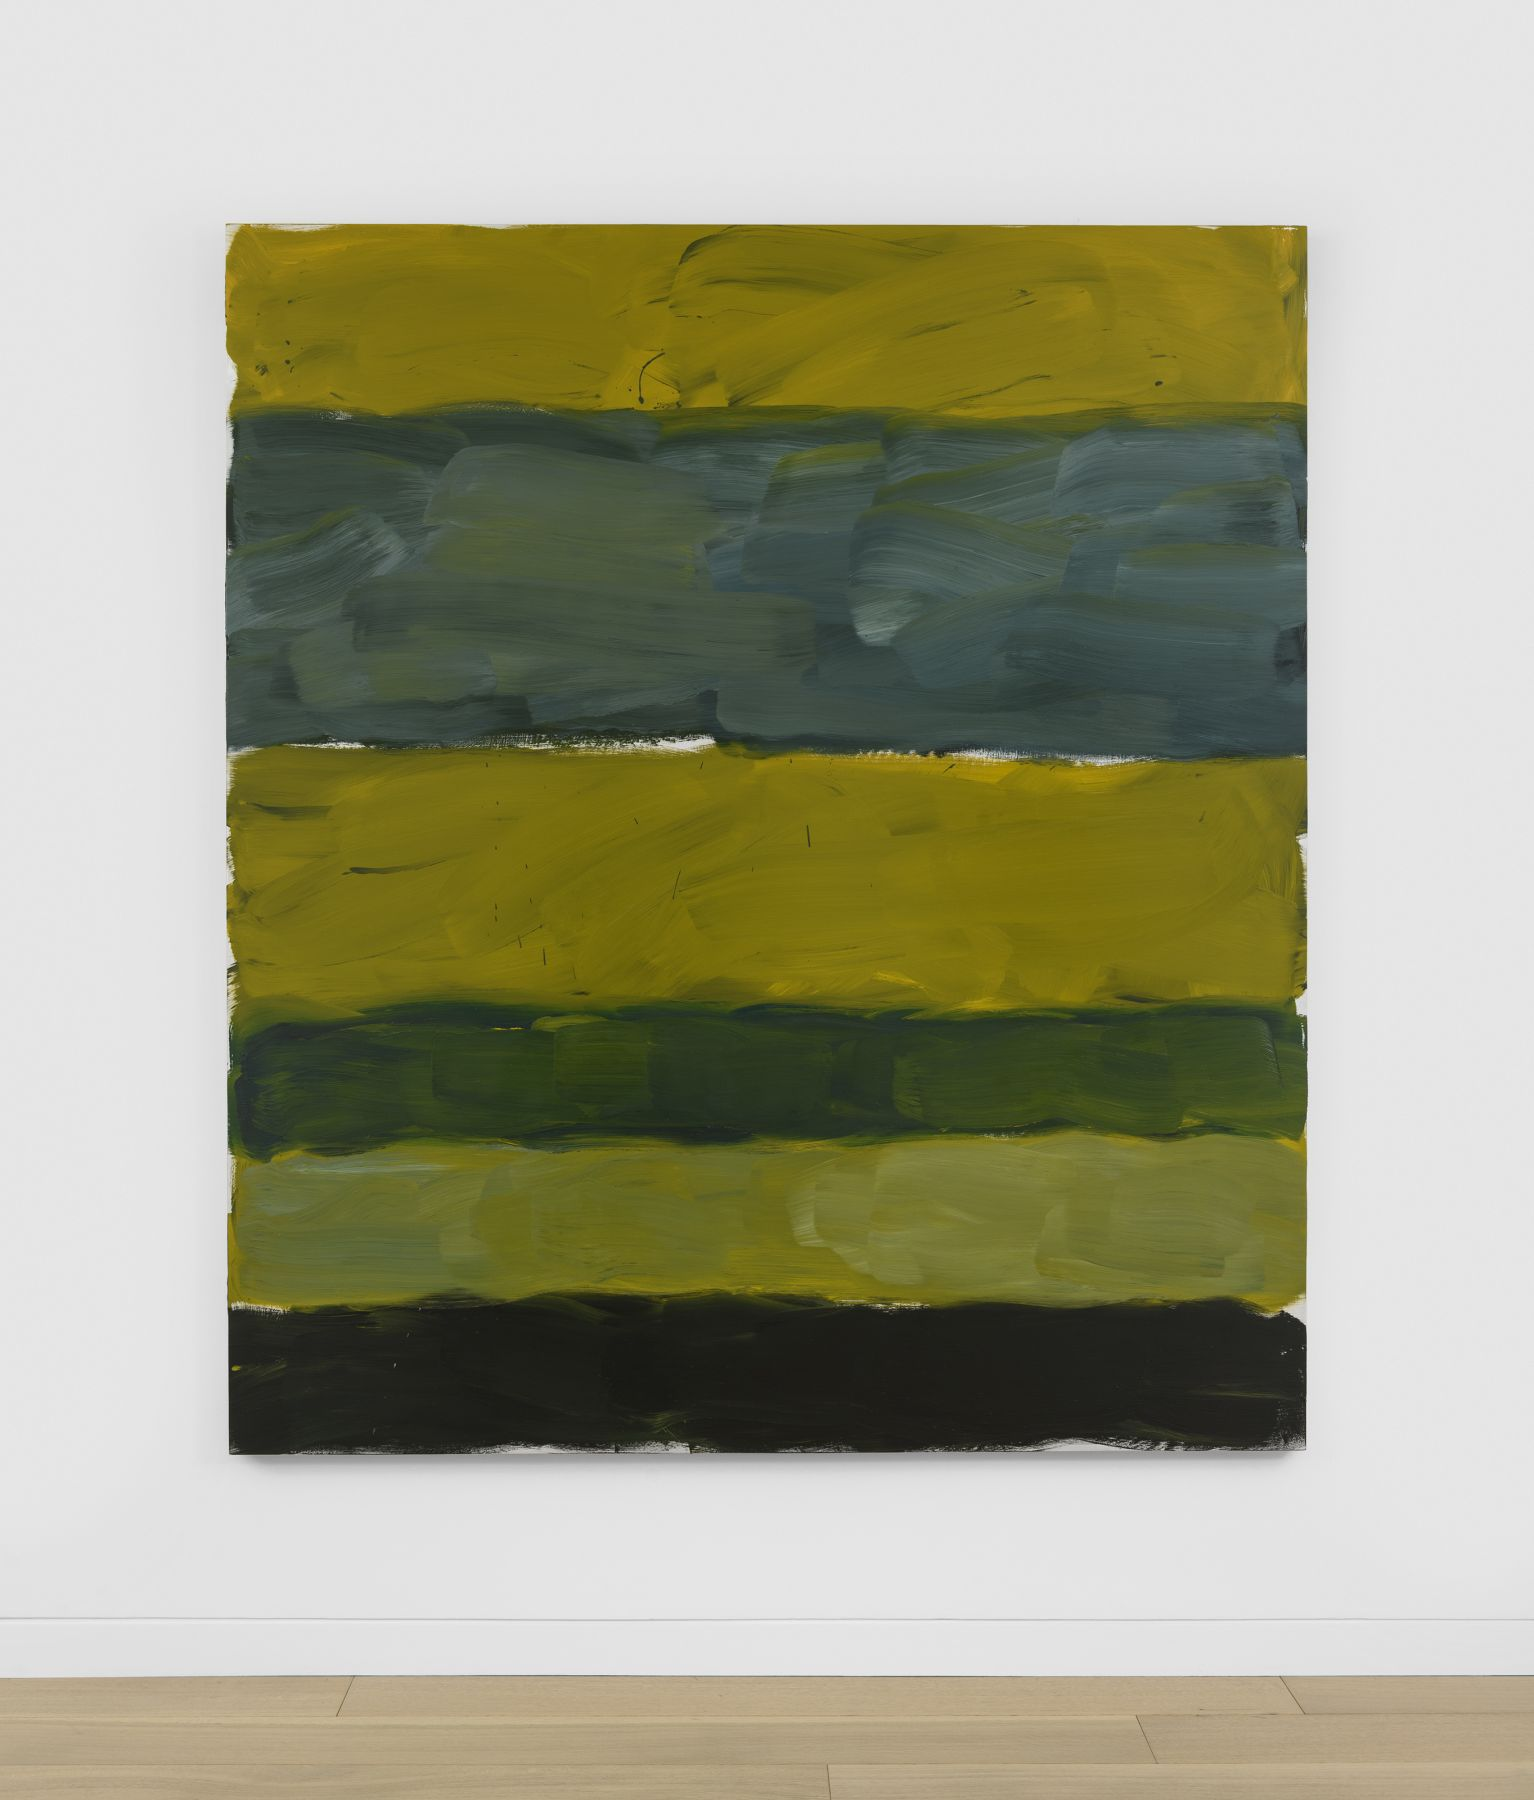 Sean Scully - Text